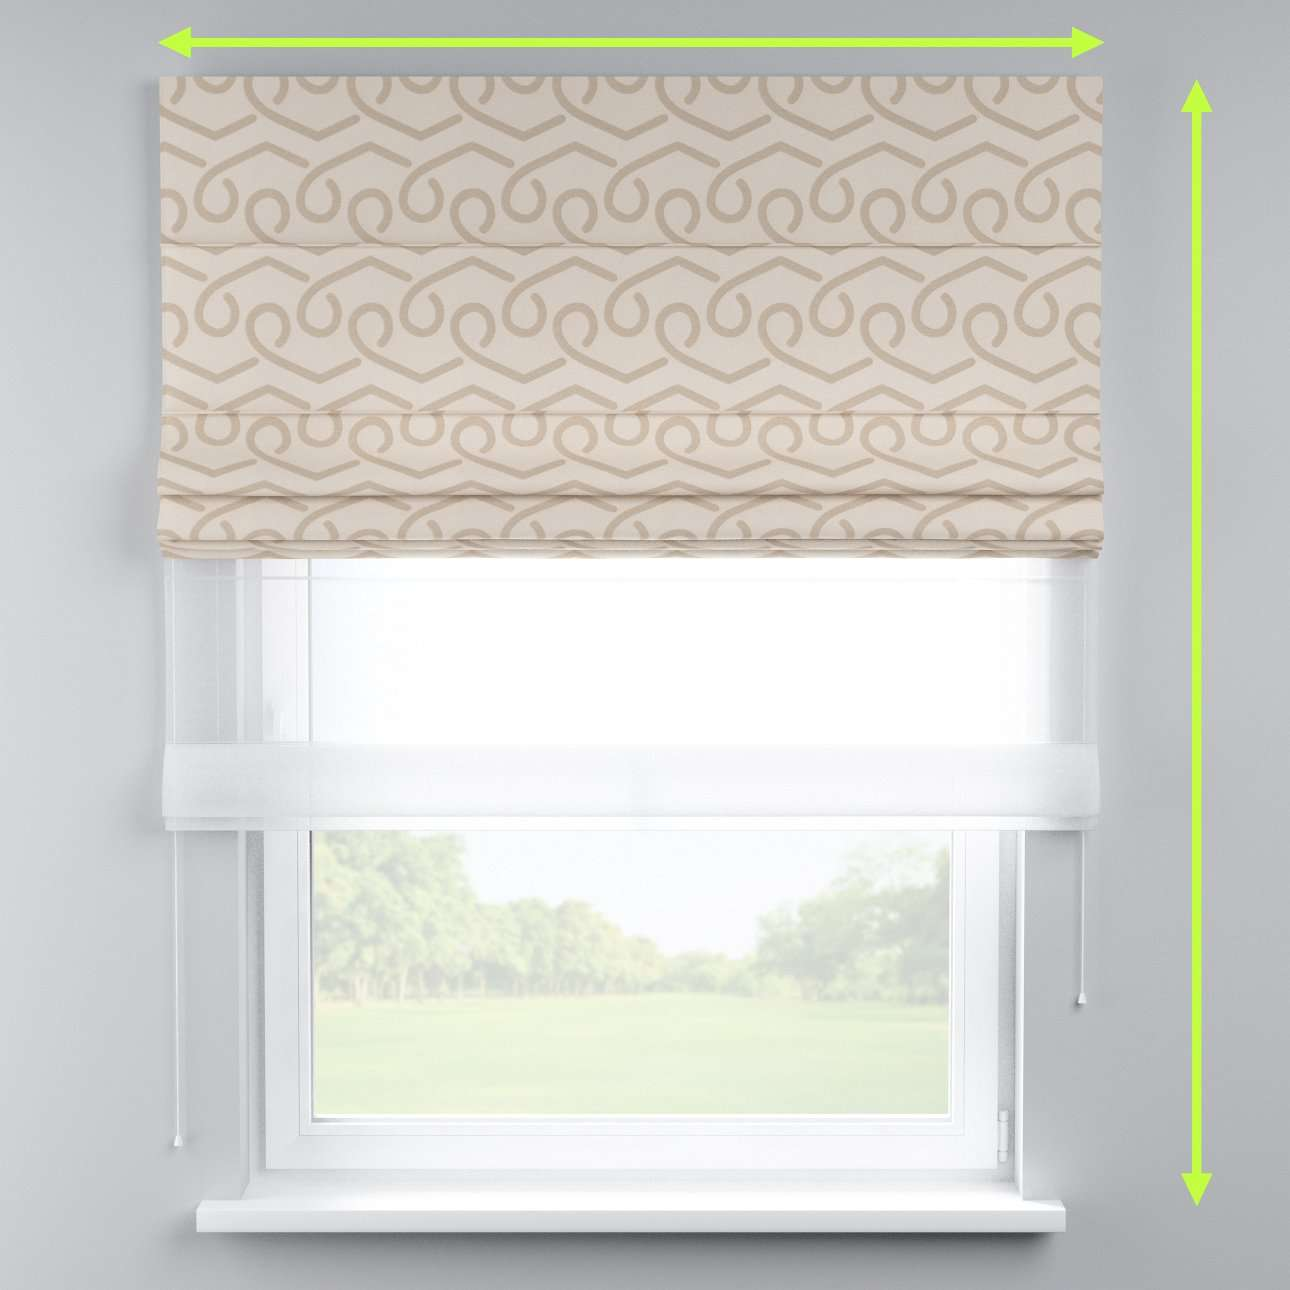 Voile and fabric roman blind (DUO II) in collection Rustica, fabric: 140-85